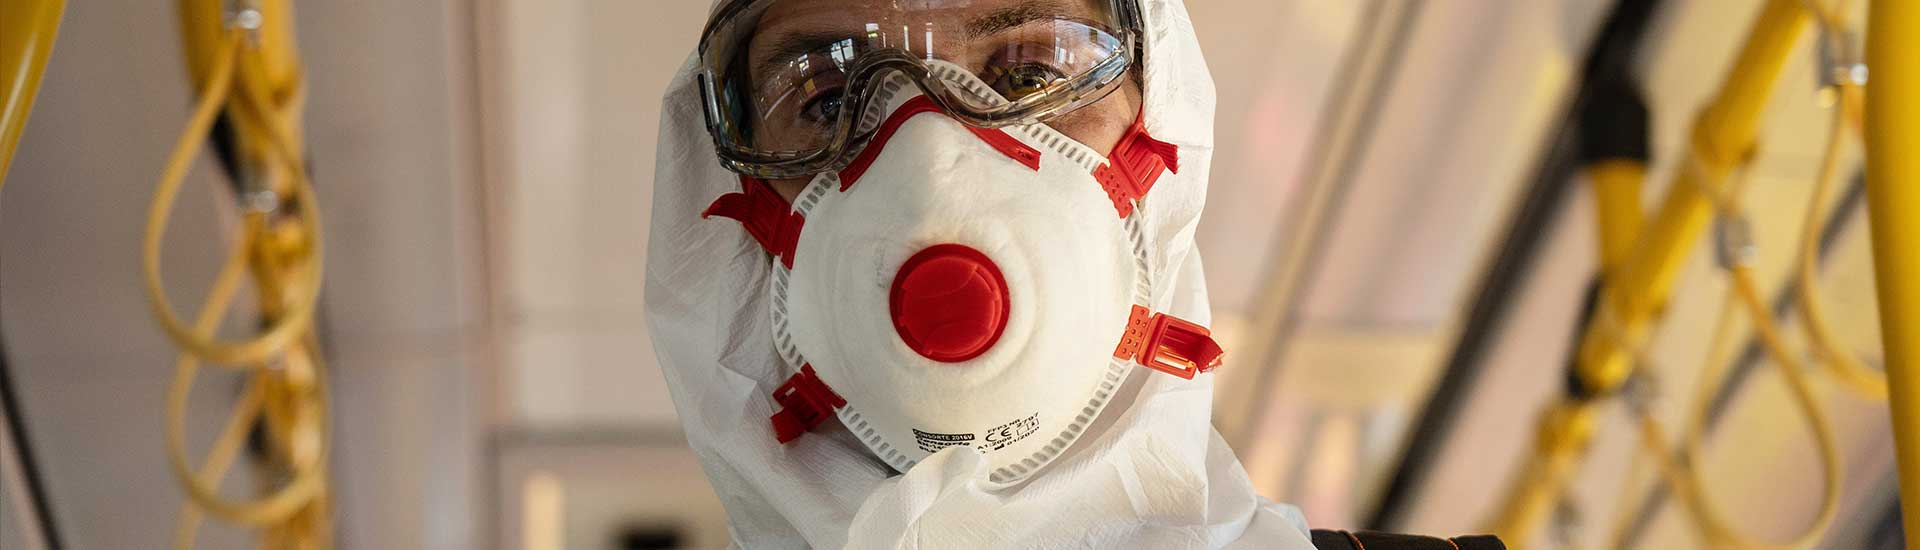 Electricity Industry Respirators & Breathing Masks